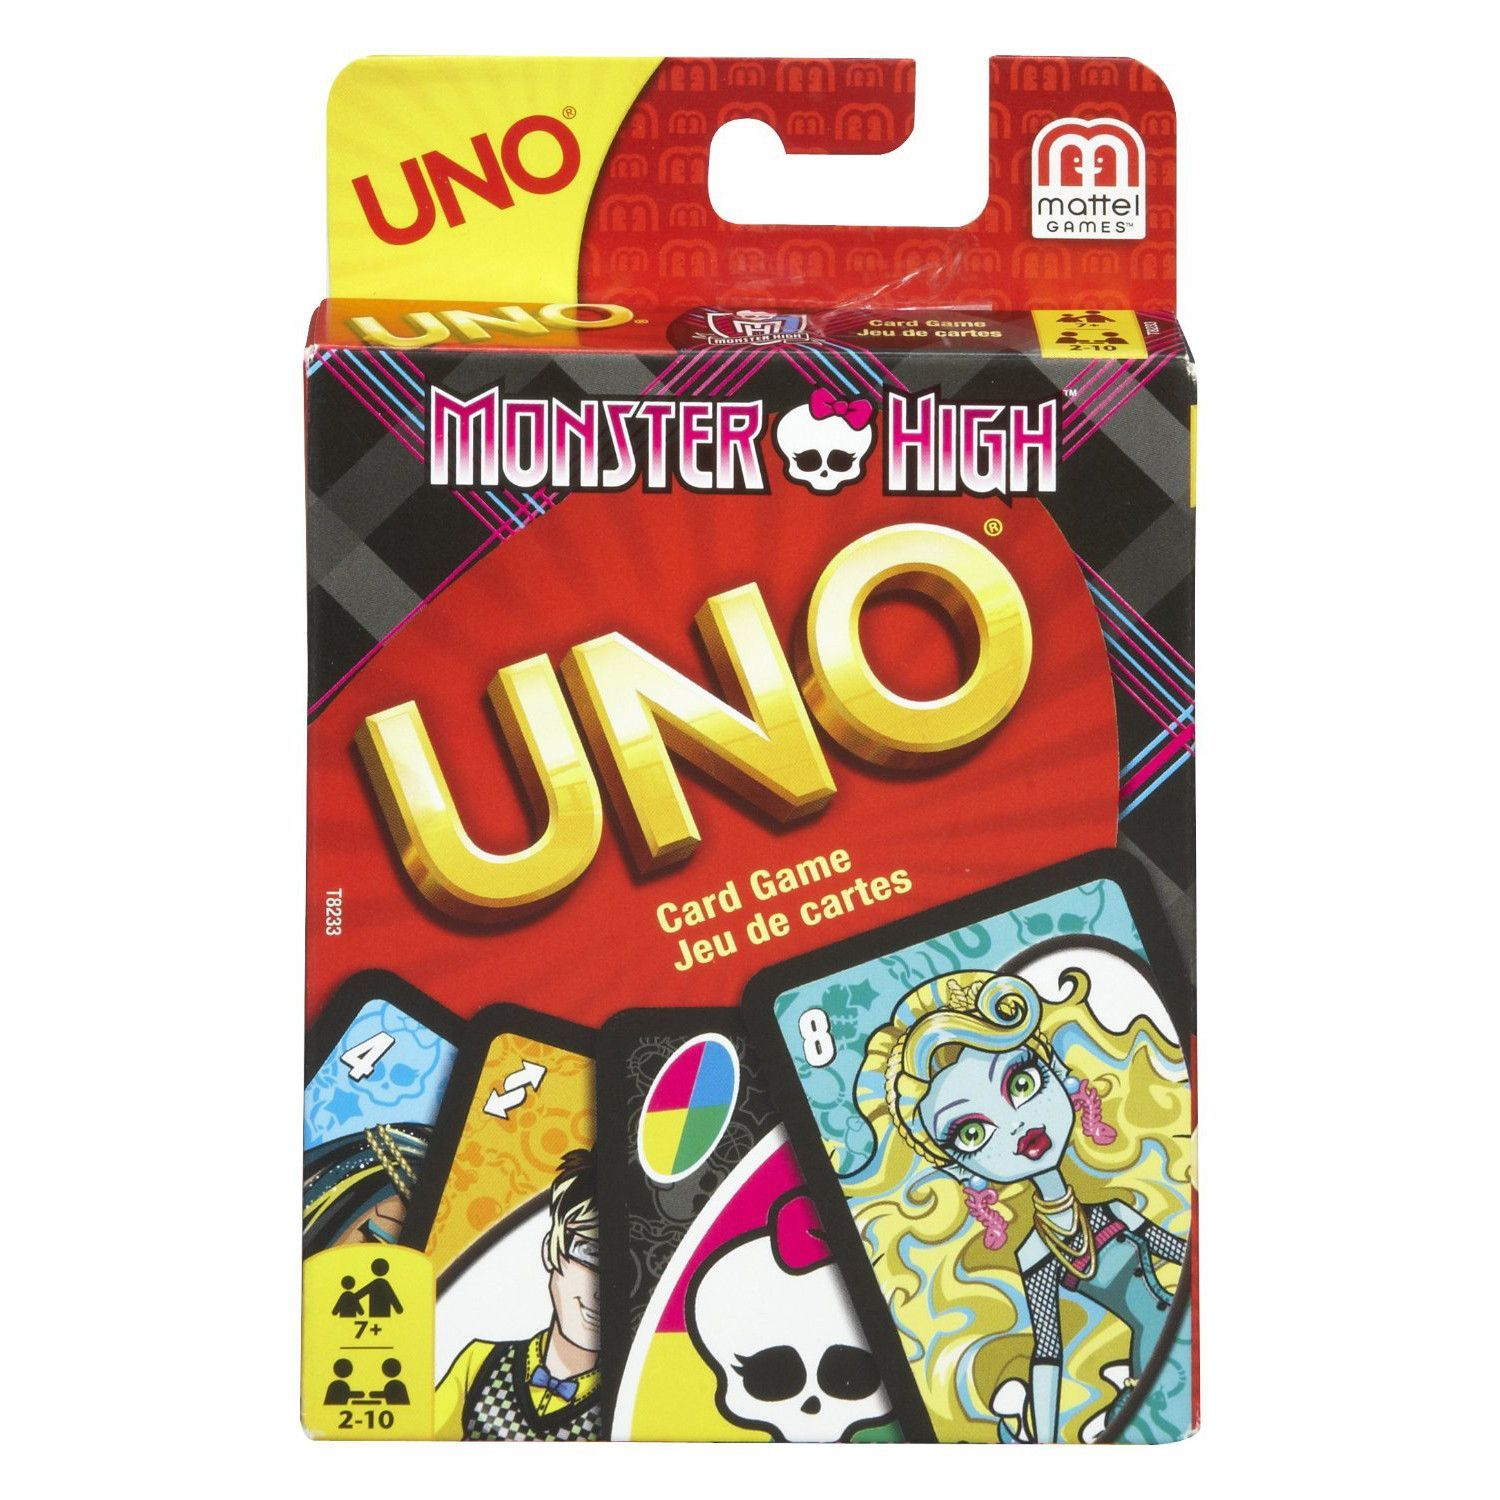 Monster High UNO Card Game The classic game of UNO gets a